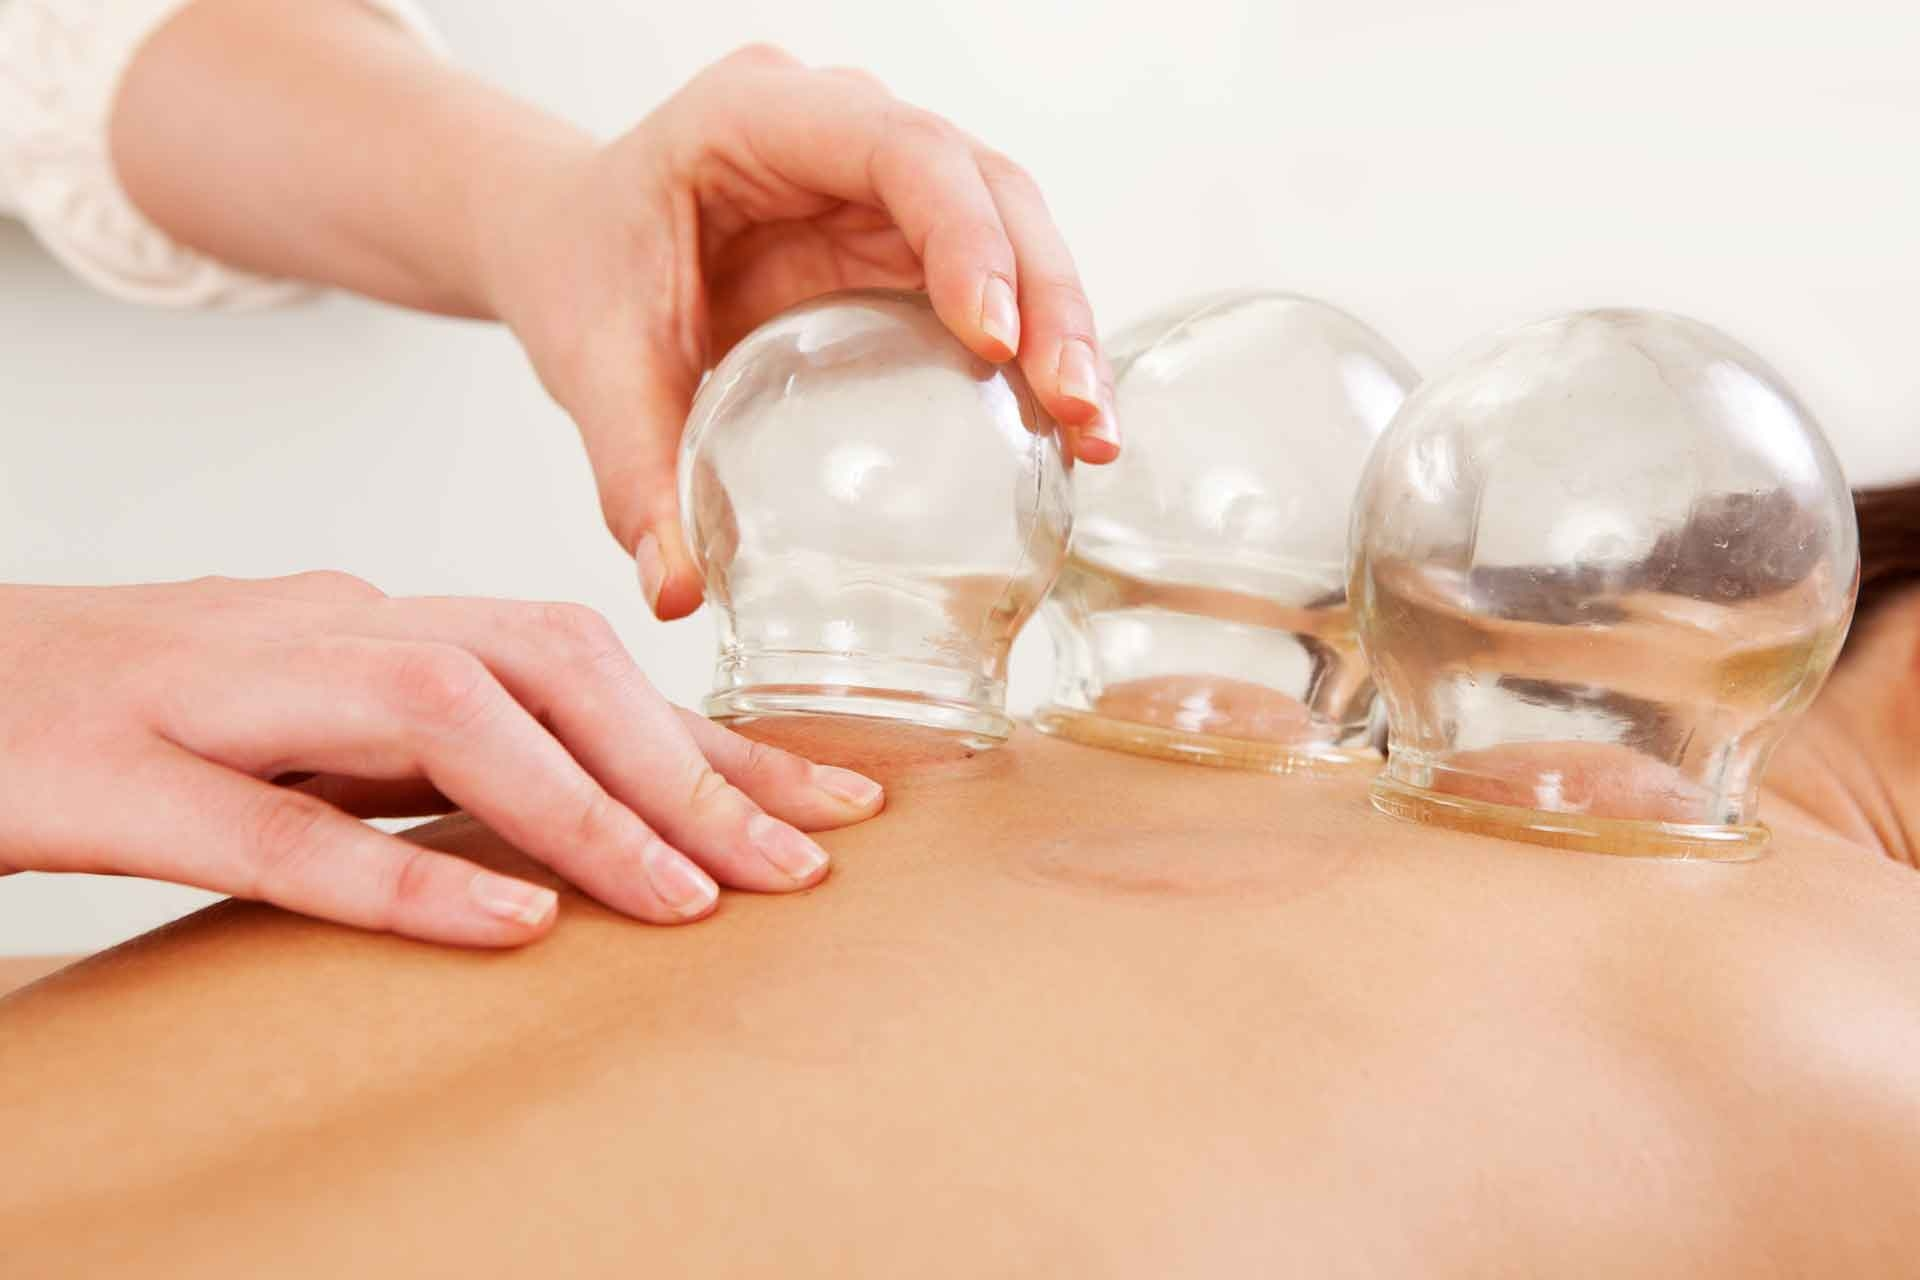 CUPPING Applying pressure with a cup enables the body to restore its natural energy flow, increasing blood circulation to muscles and tissues which loosens the knots and frees up the fascia too move freely and relieves pain.